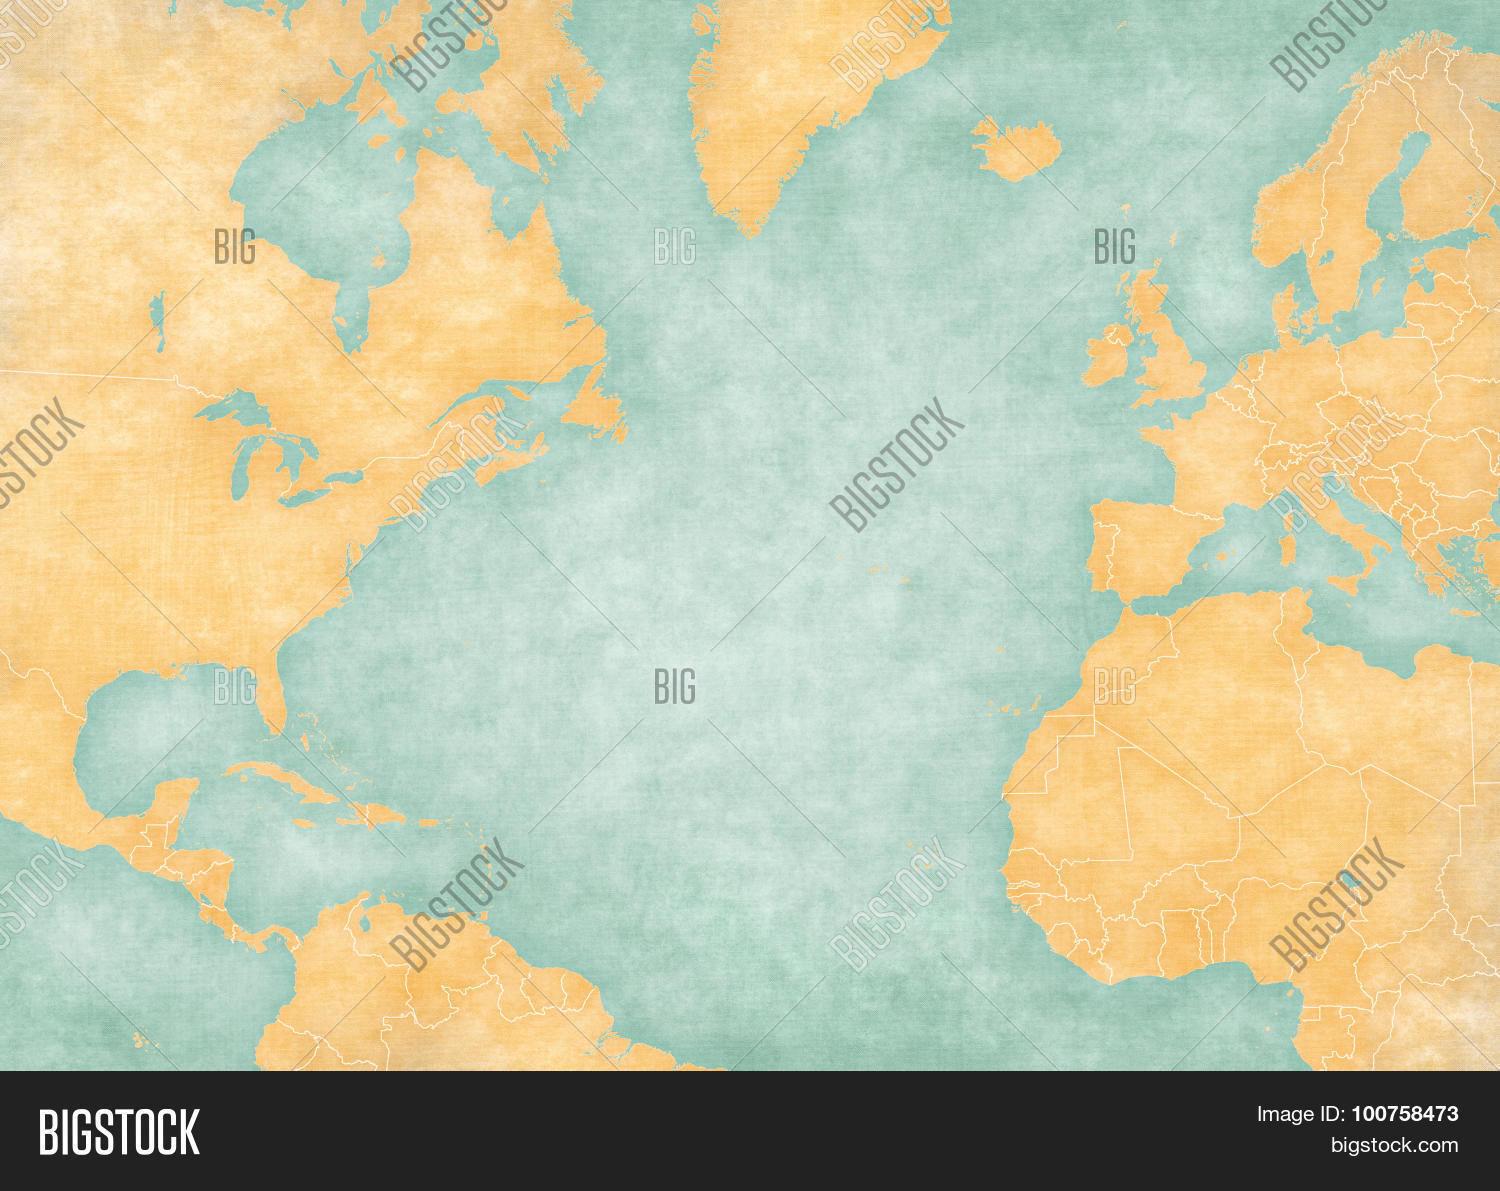 Blank Map North Image   Photo  Free Trial    Bigstock Blank map of North Atlantic Ocean with country borders  The Map is in  vintage summer